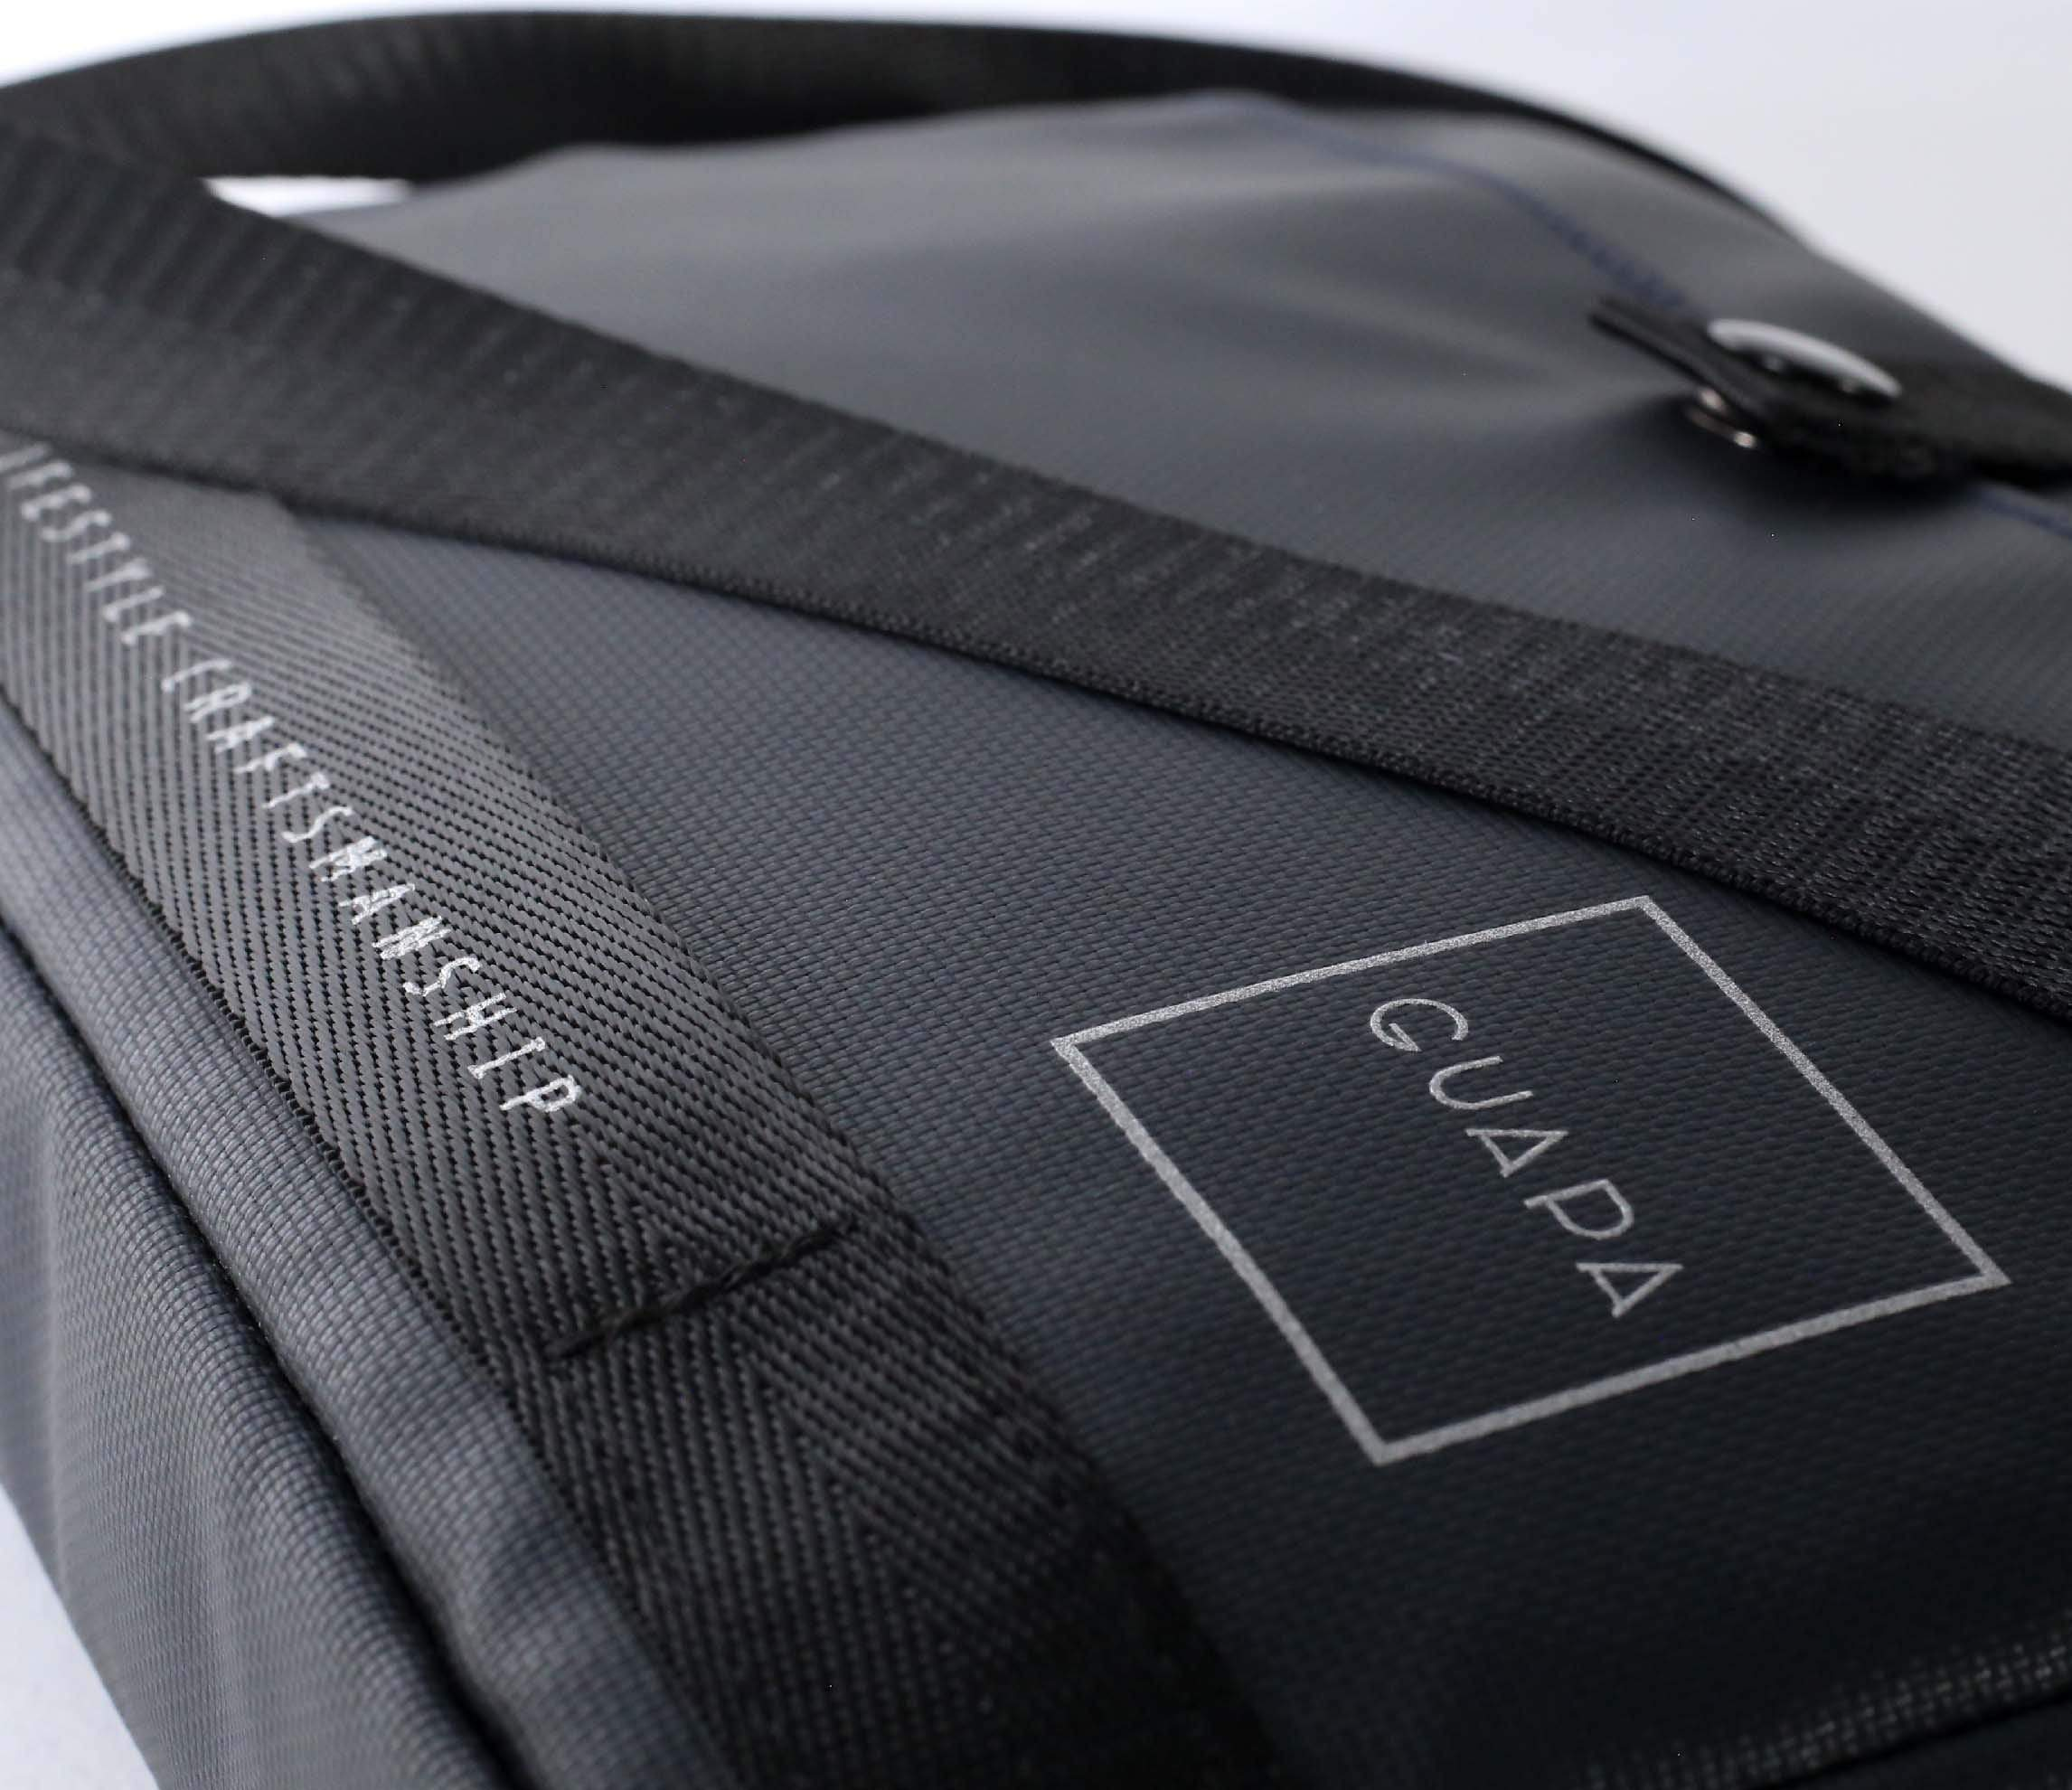 Polycarbon Shoulder Bag | Fits iPad